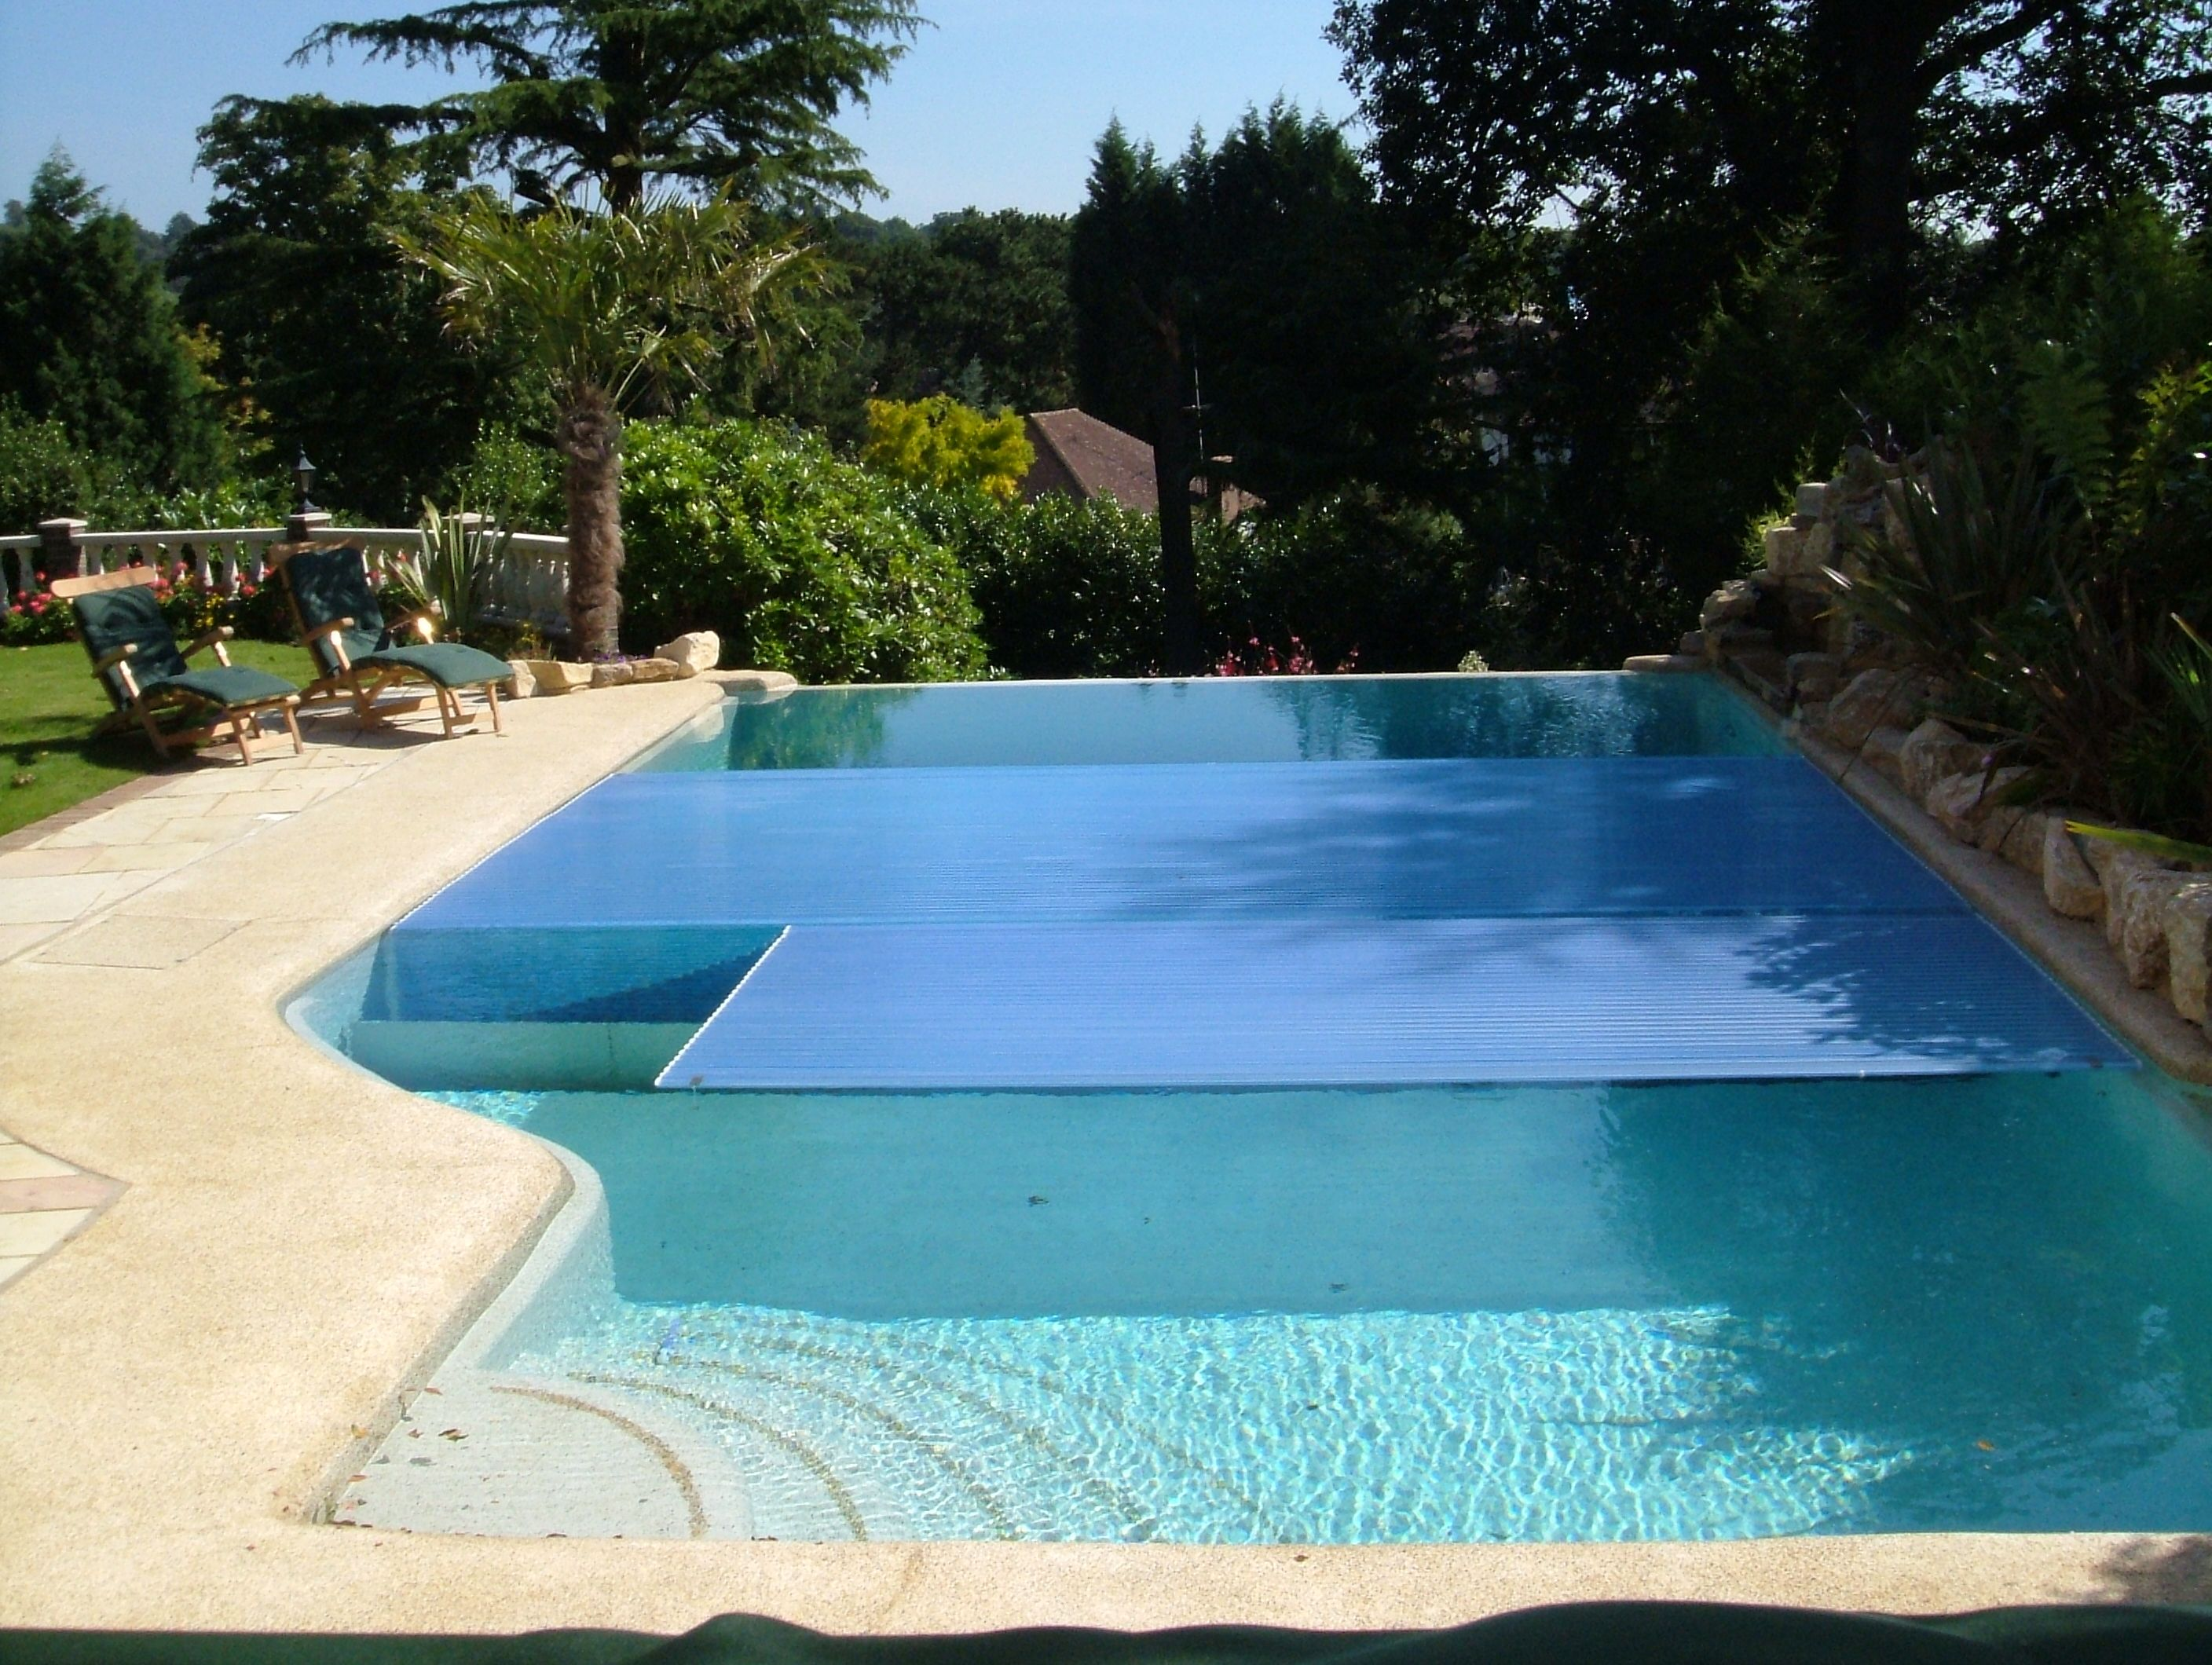 Luxury Award Winning Swimming Pool Design And Construction In London And  The South East Specialising In Bespoke Indoor And Outdoor Swimming Pools.